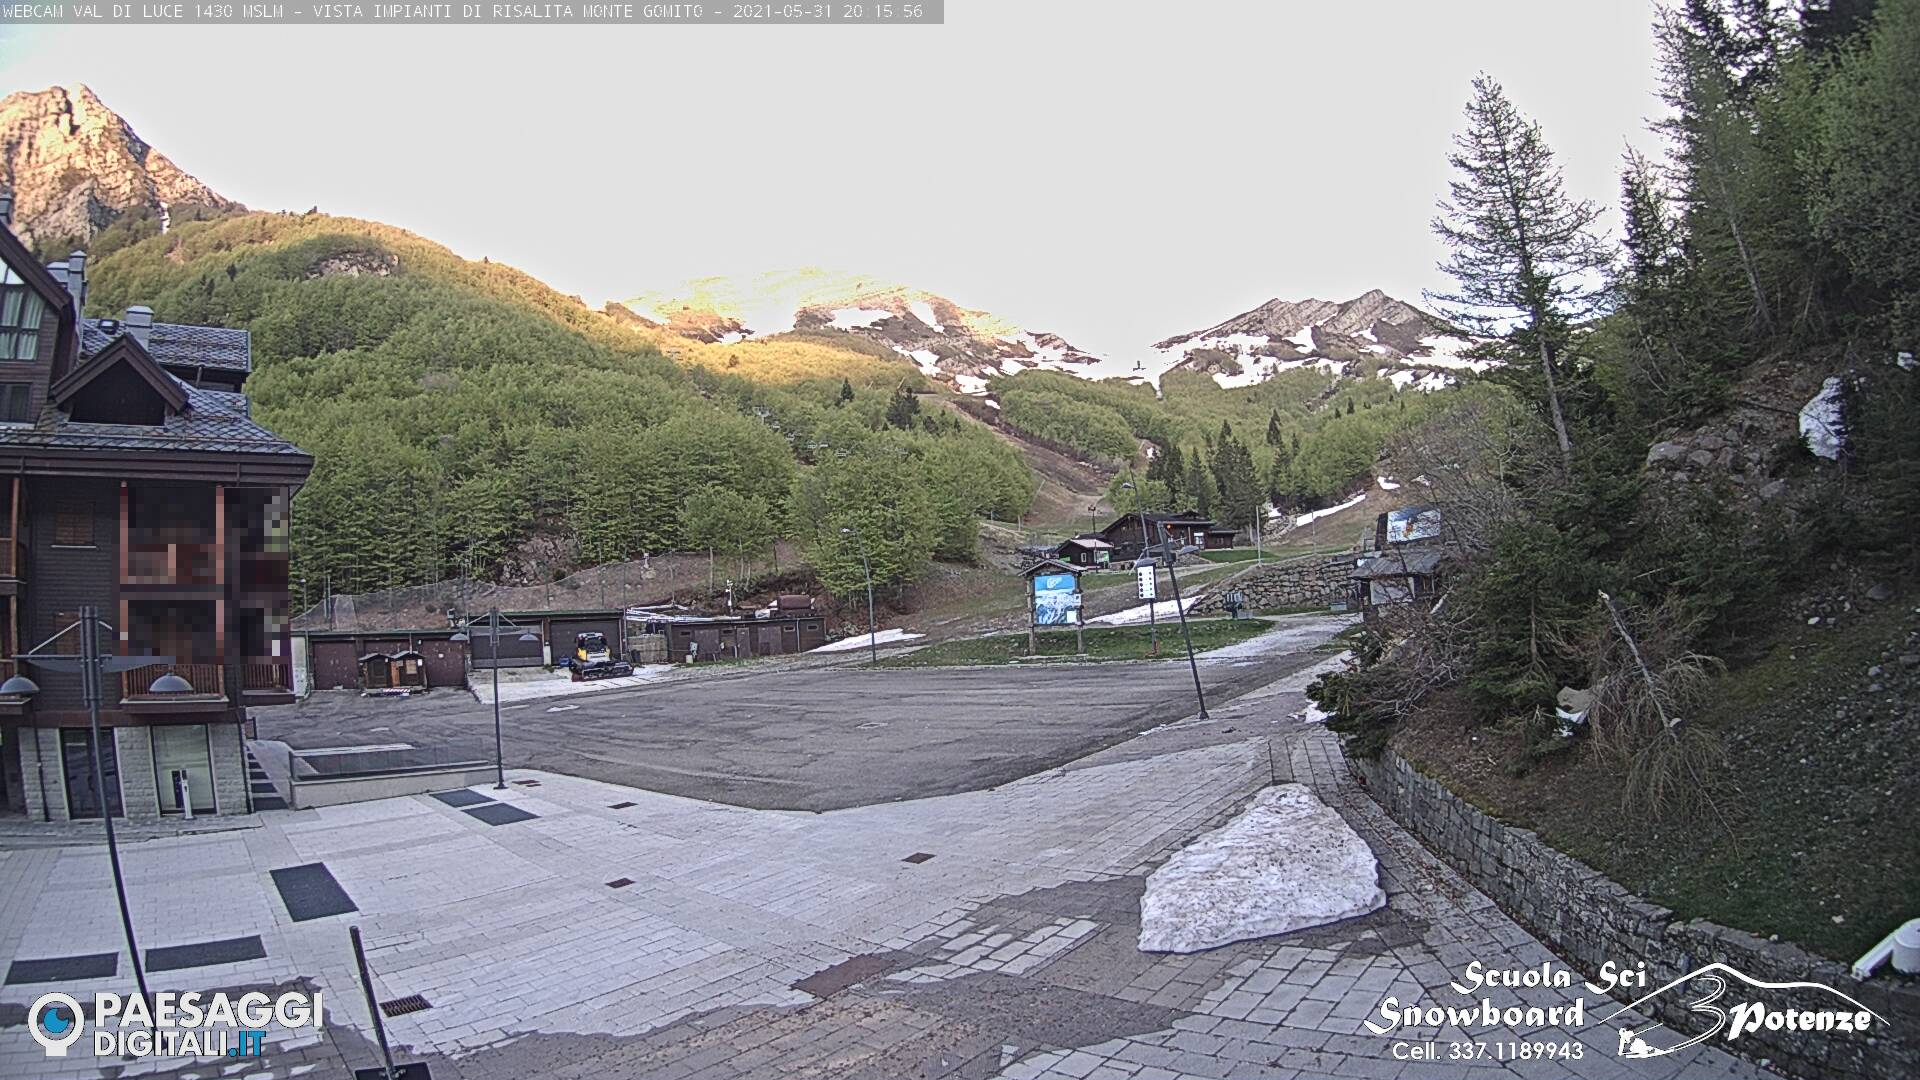 Webcam Valdiluce Piste